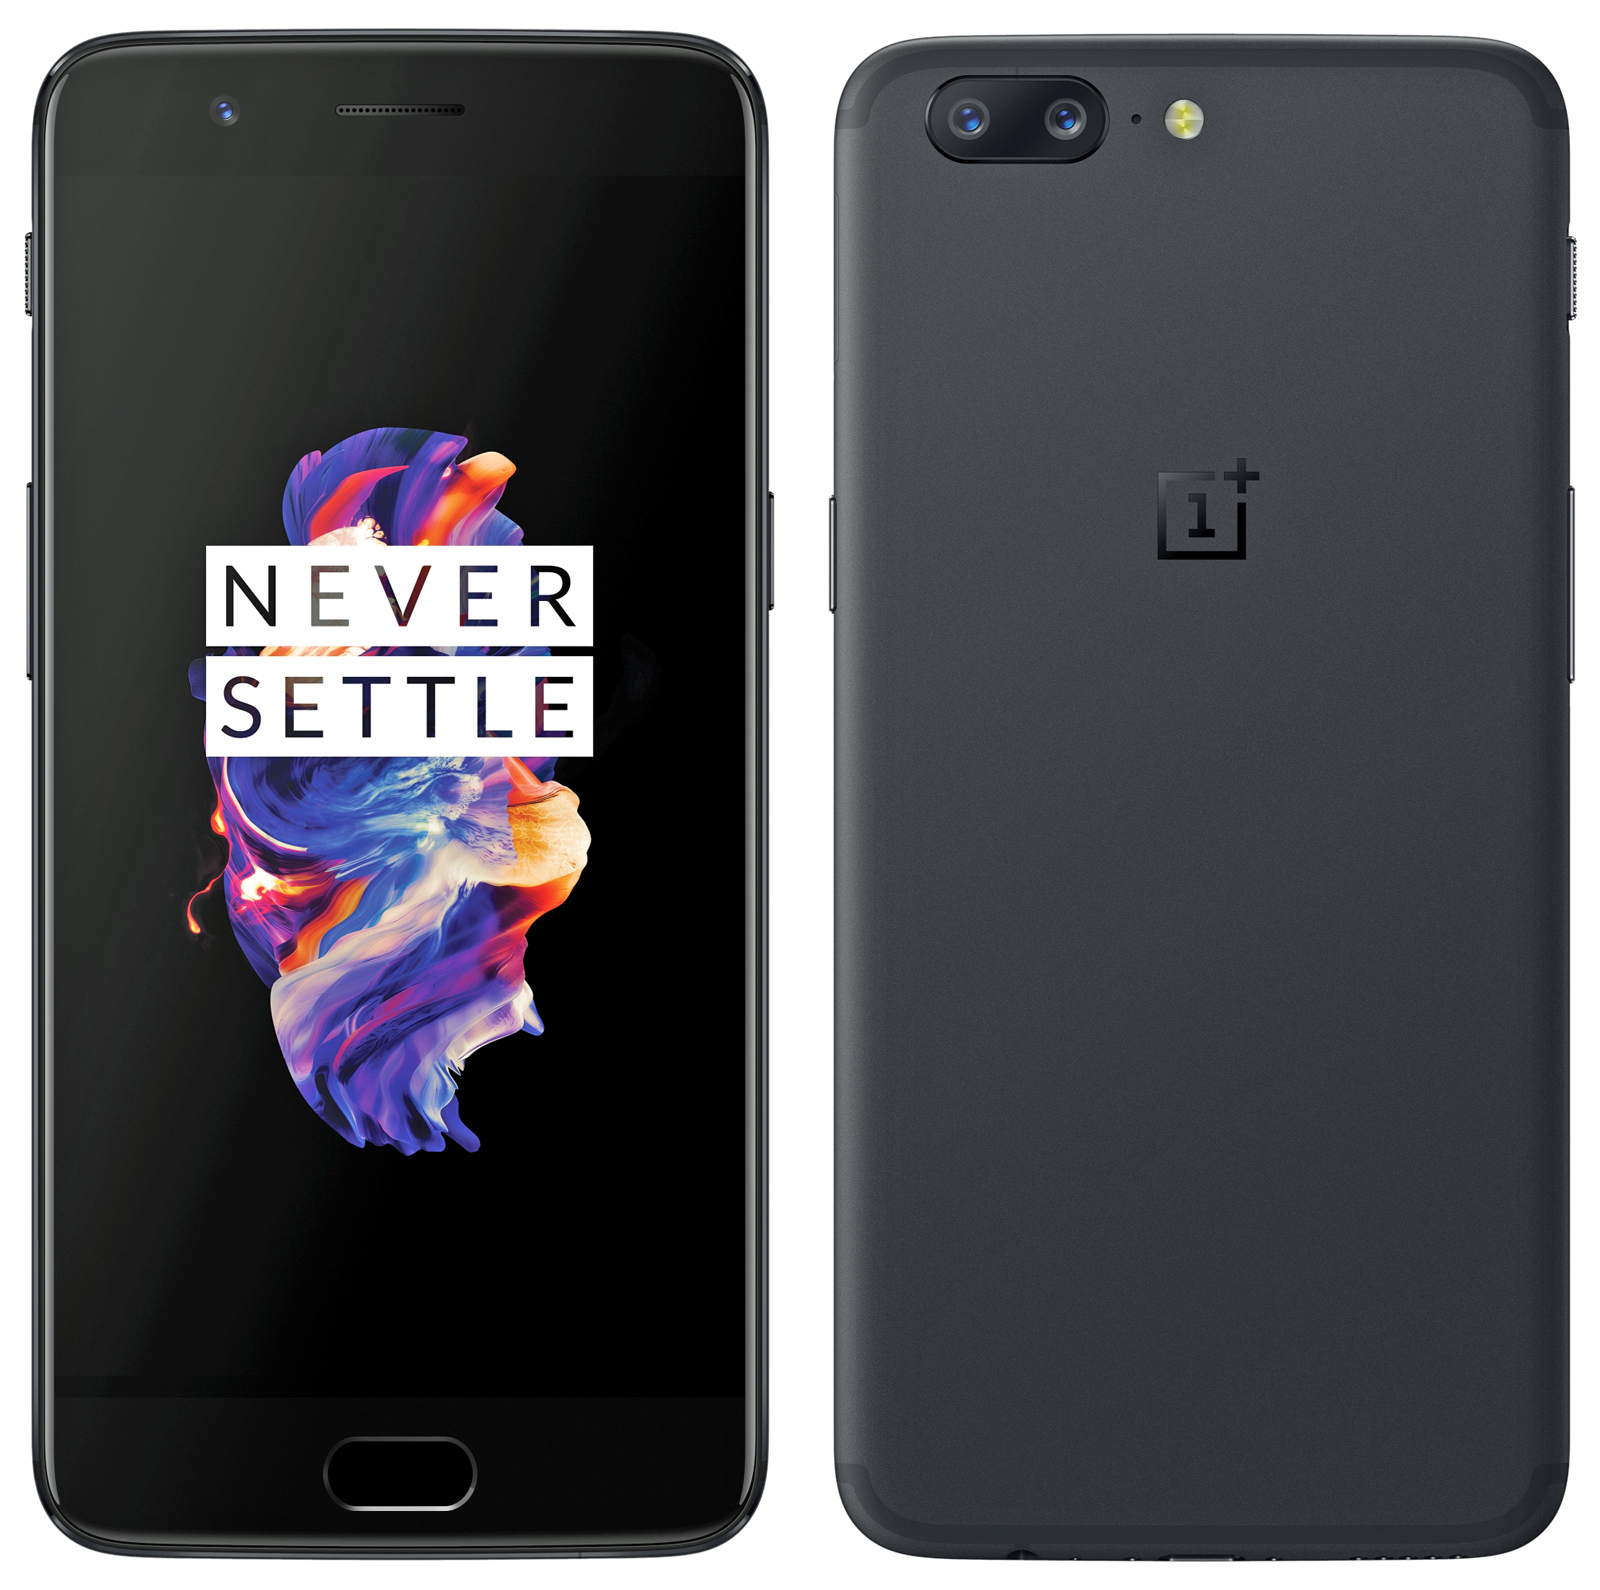 This is the OnePlus 5